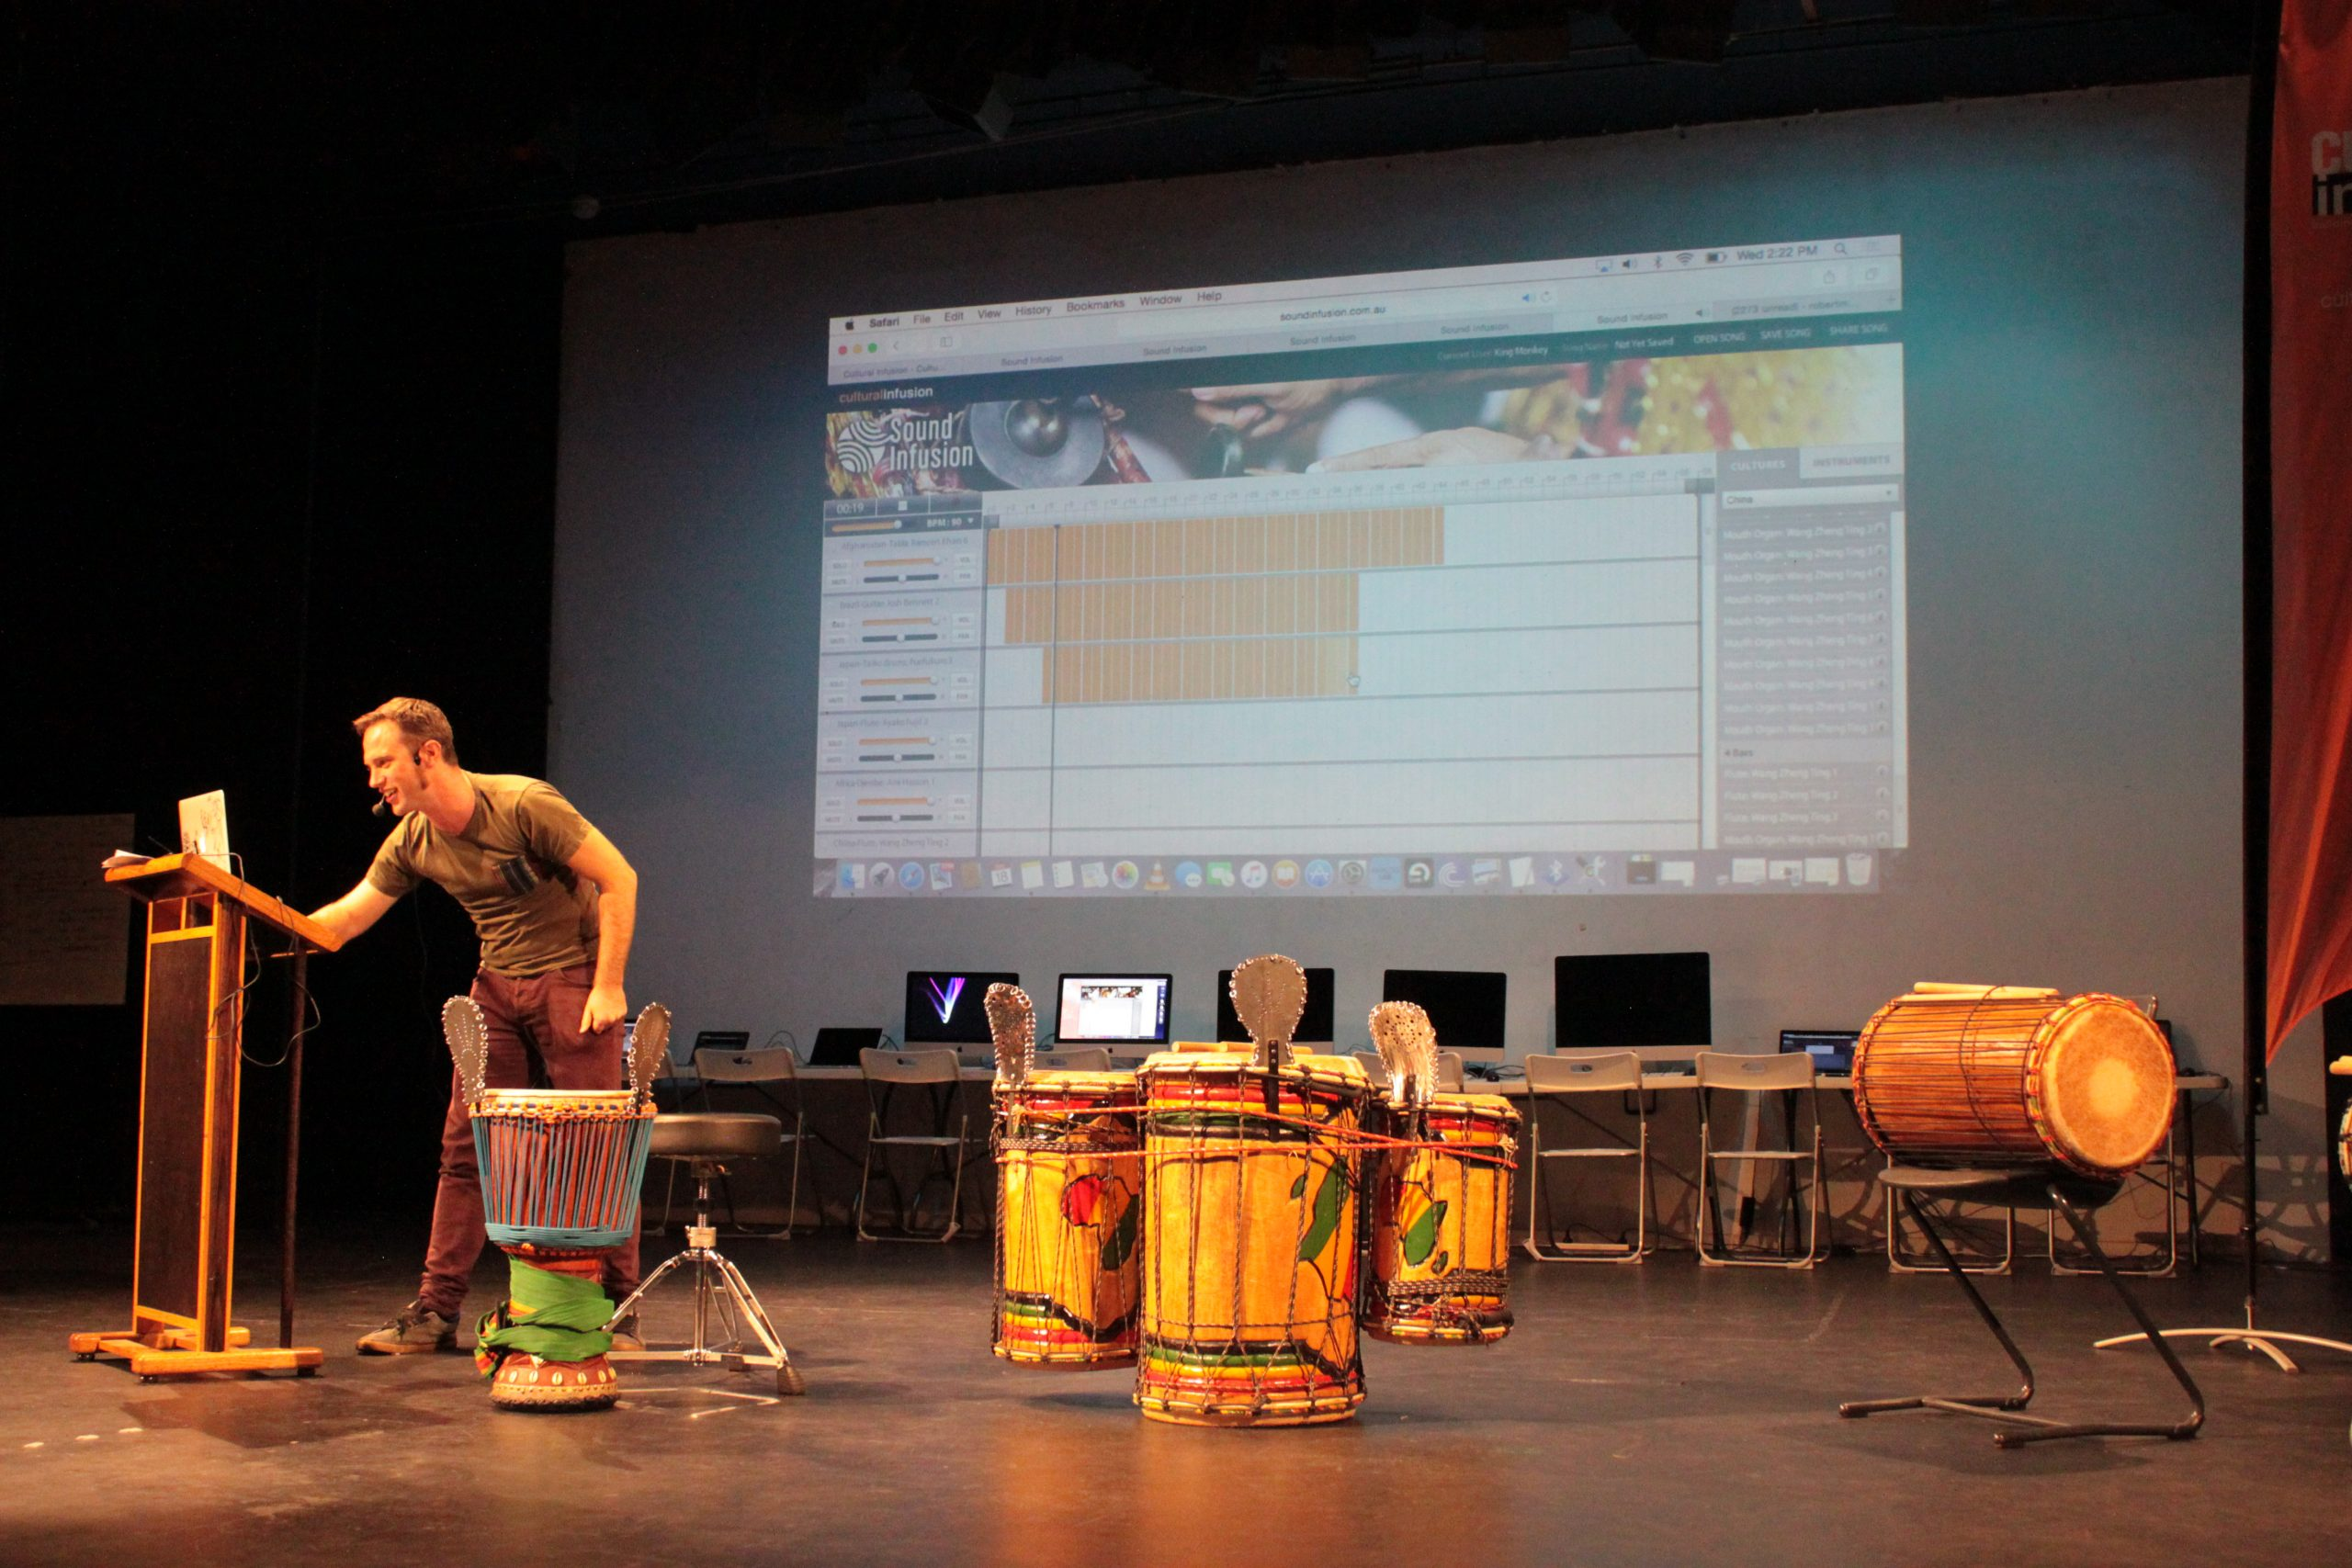 How music helps diverse communities and places and the contribution people make